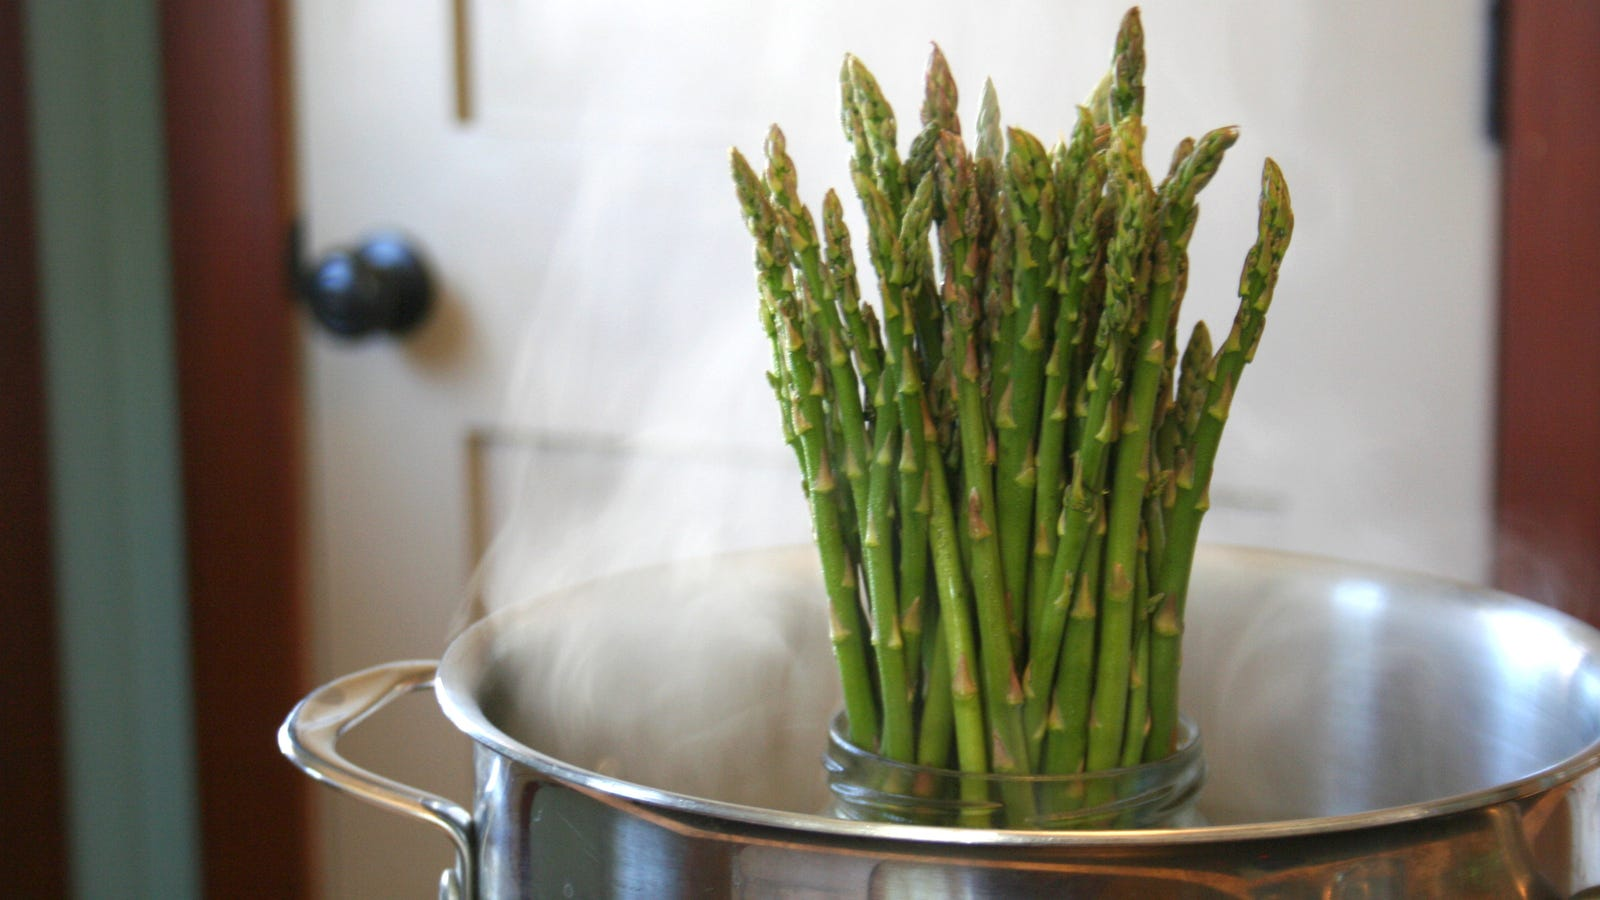 The best method for cooking asparagus is 2,000 years old